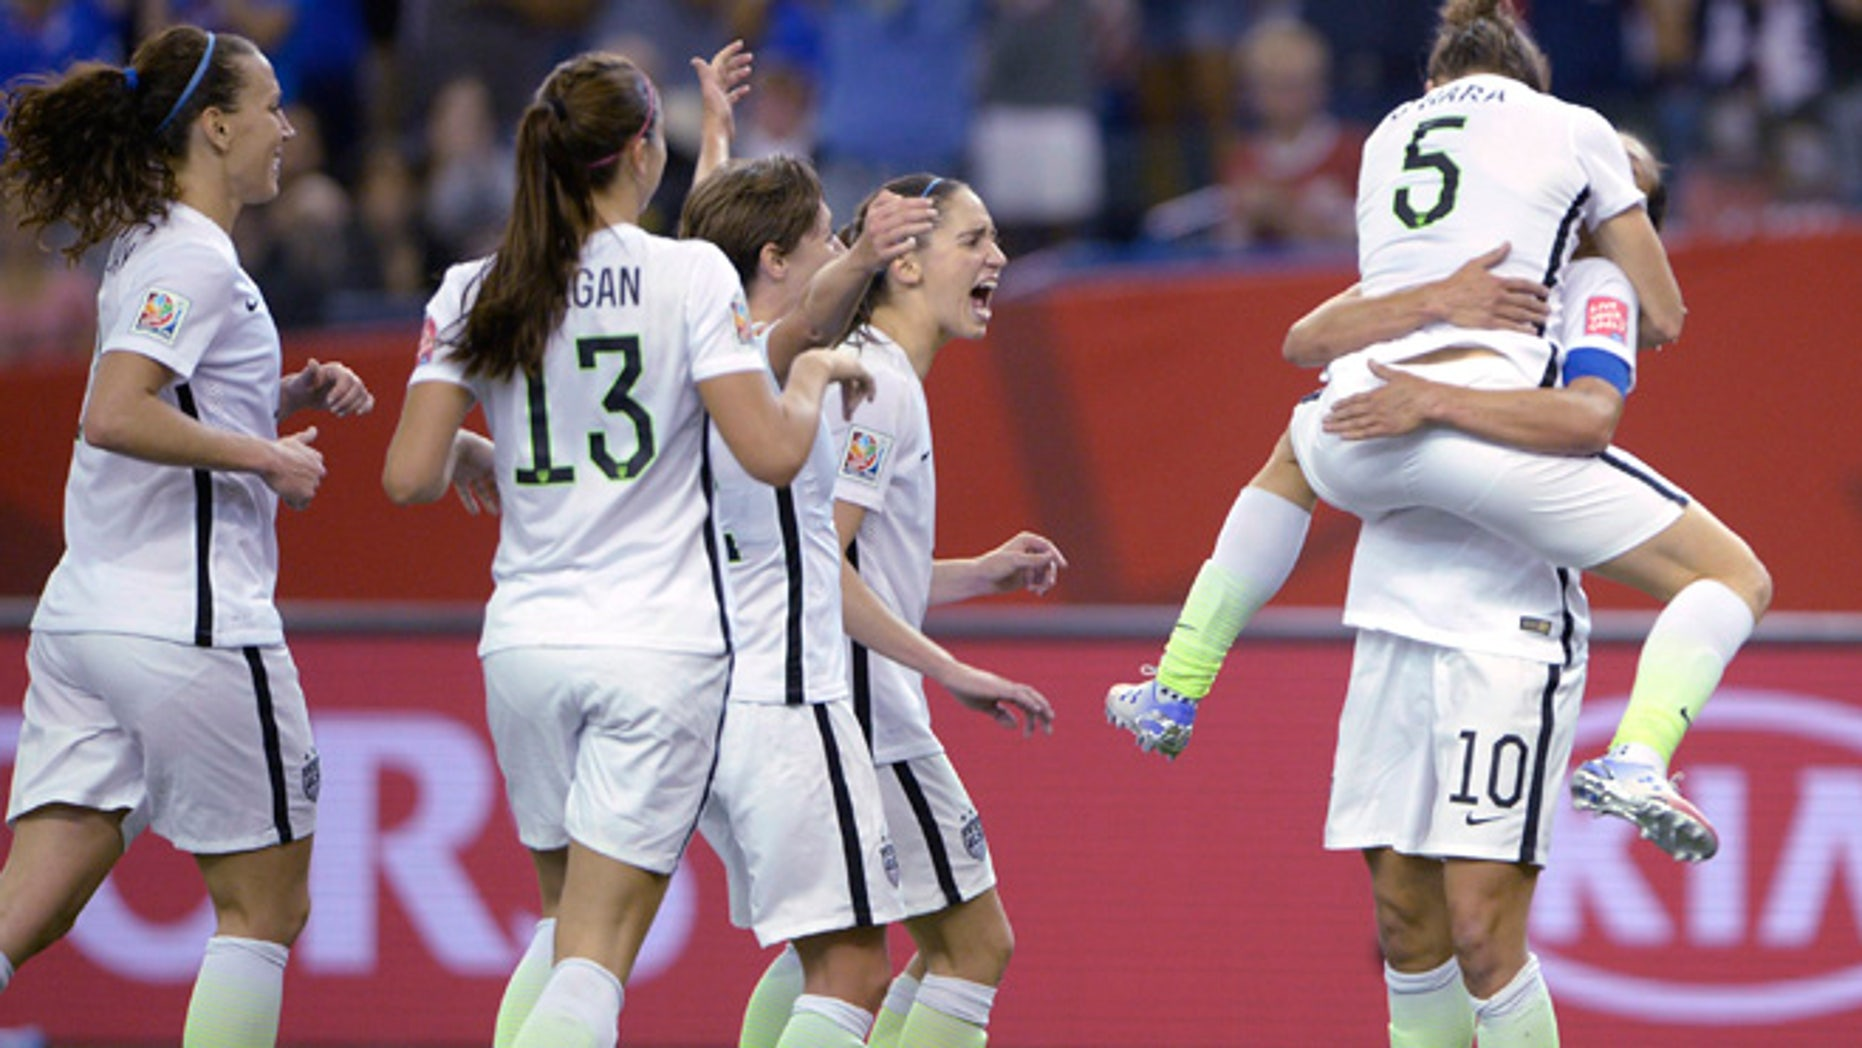 June 30, 2015: United States' Kelly O'Hara (5) jumps into the arms of Carli Lloyd after O'Hara scored against Germany during the second half of a semifinal in the Women's World Cup soccer tournament in Montreal, Canada. (AP)